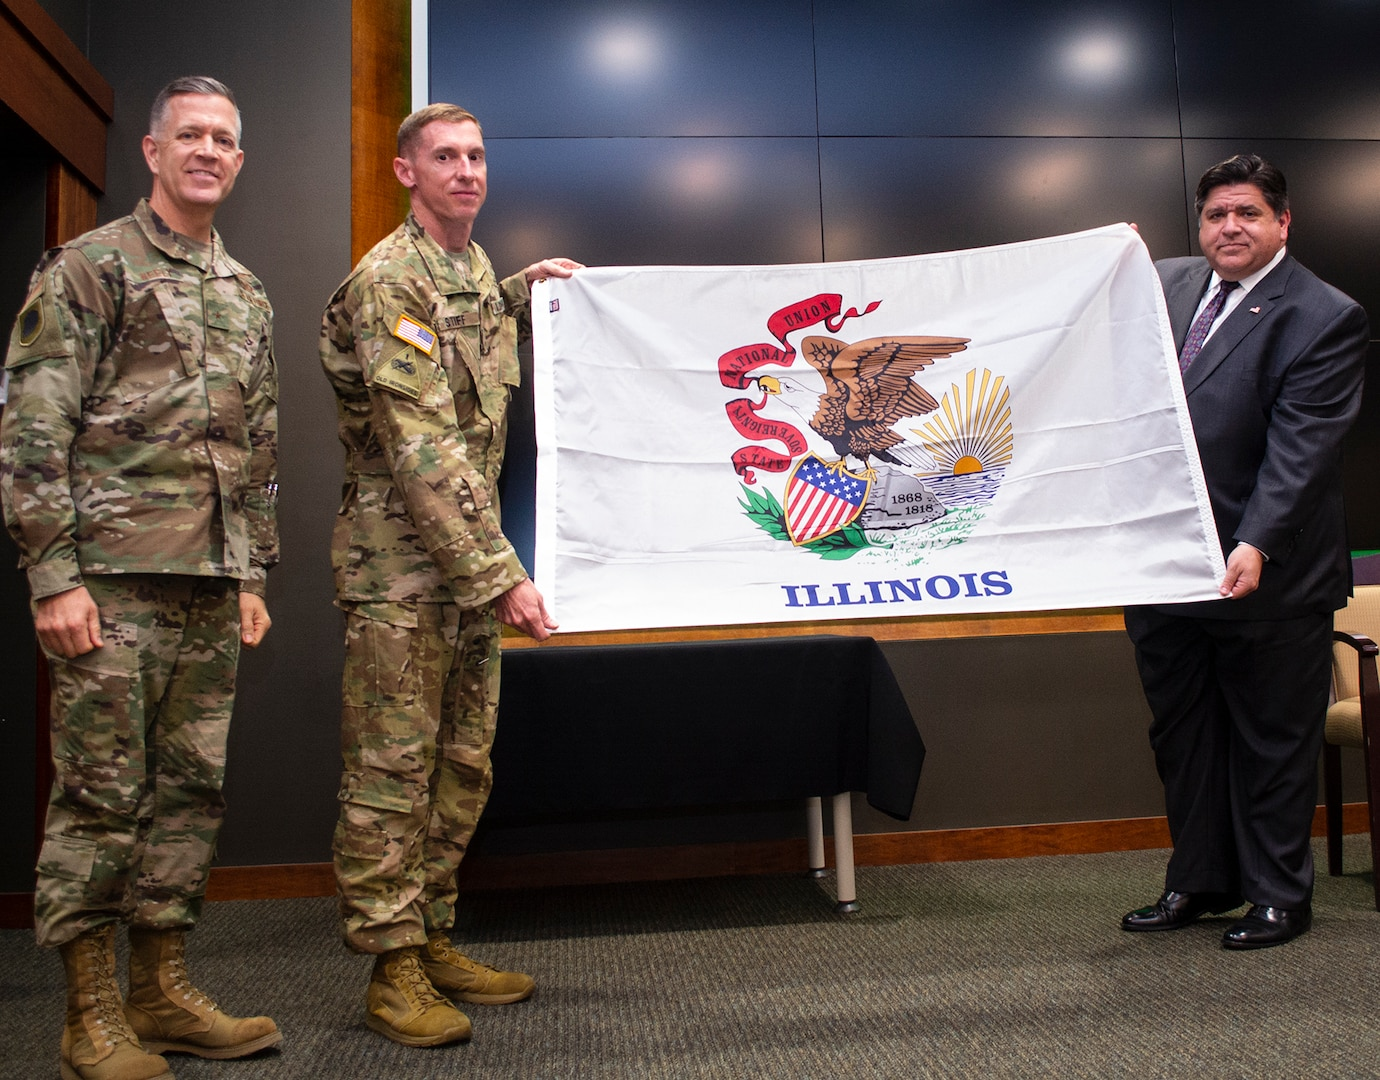 Illinois Governor JB Pritzker presents an Illinois flag to Chief Warrant Officer 5 Jason Stiff of Pawnee, Illinois, Commander, Detachment 5, Company A, 2nd Battalion, 245th Aviation Regiment, during the mobilization ceremony May 22 at Camp Lincoln, Springfield, Illinois. The unit will deploy to the Horn of Africa. Joining Pritzker and Stiff is Illinois Adjutant General Brig. Gen. Richard Neely. (U.S. Army photo by Barbara Wilson, Illinois National Guard Public Affairs Office.)